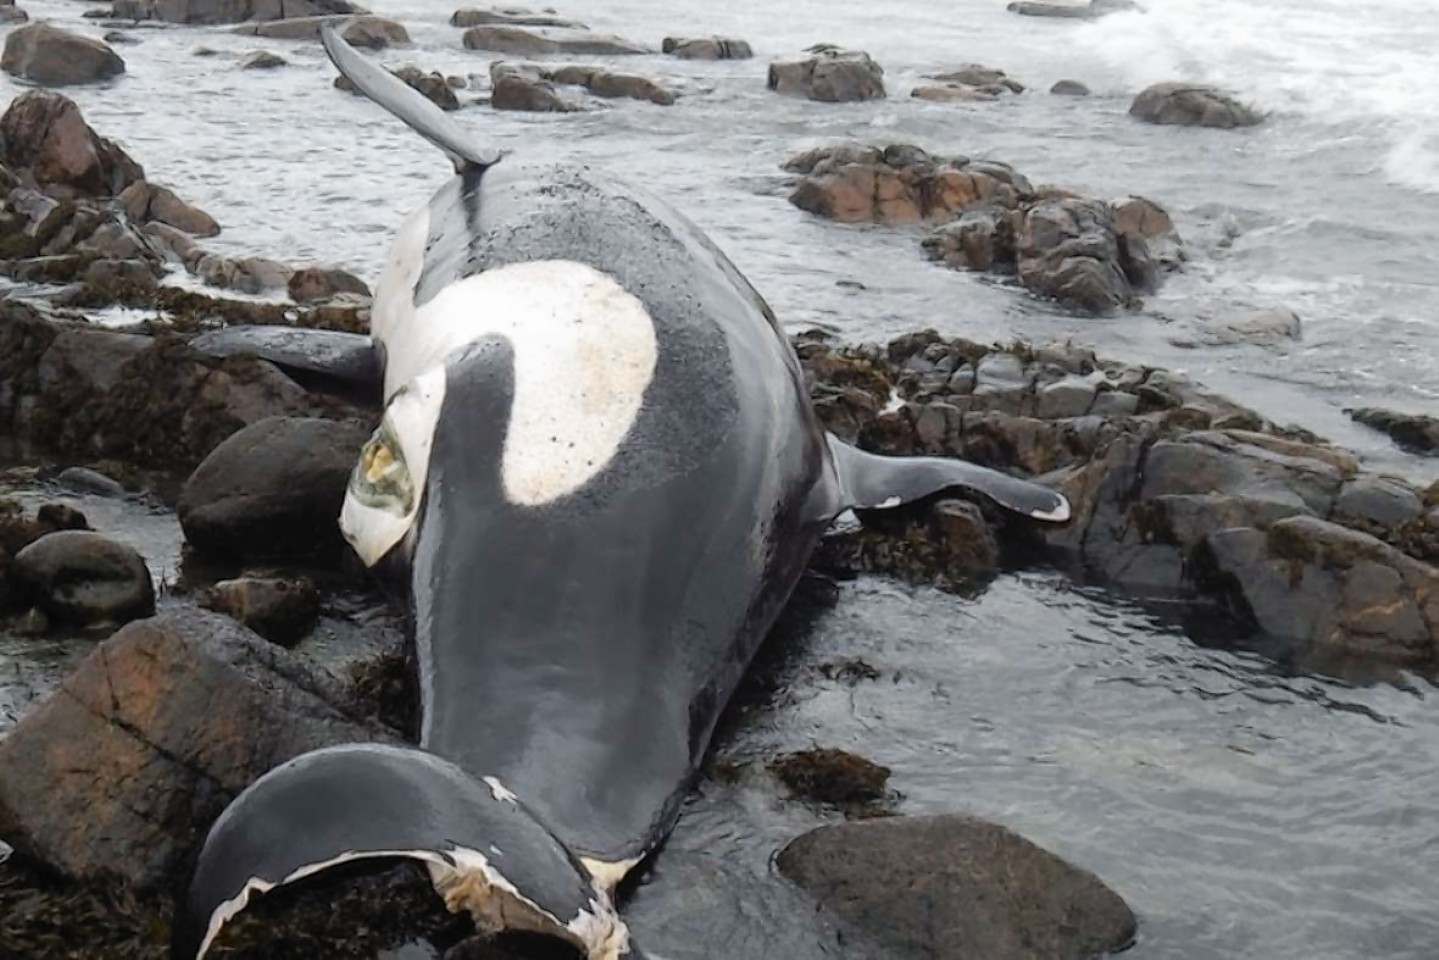 The body of the female orca, named Lulu, that was washed ashore on Tiree